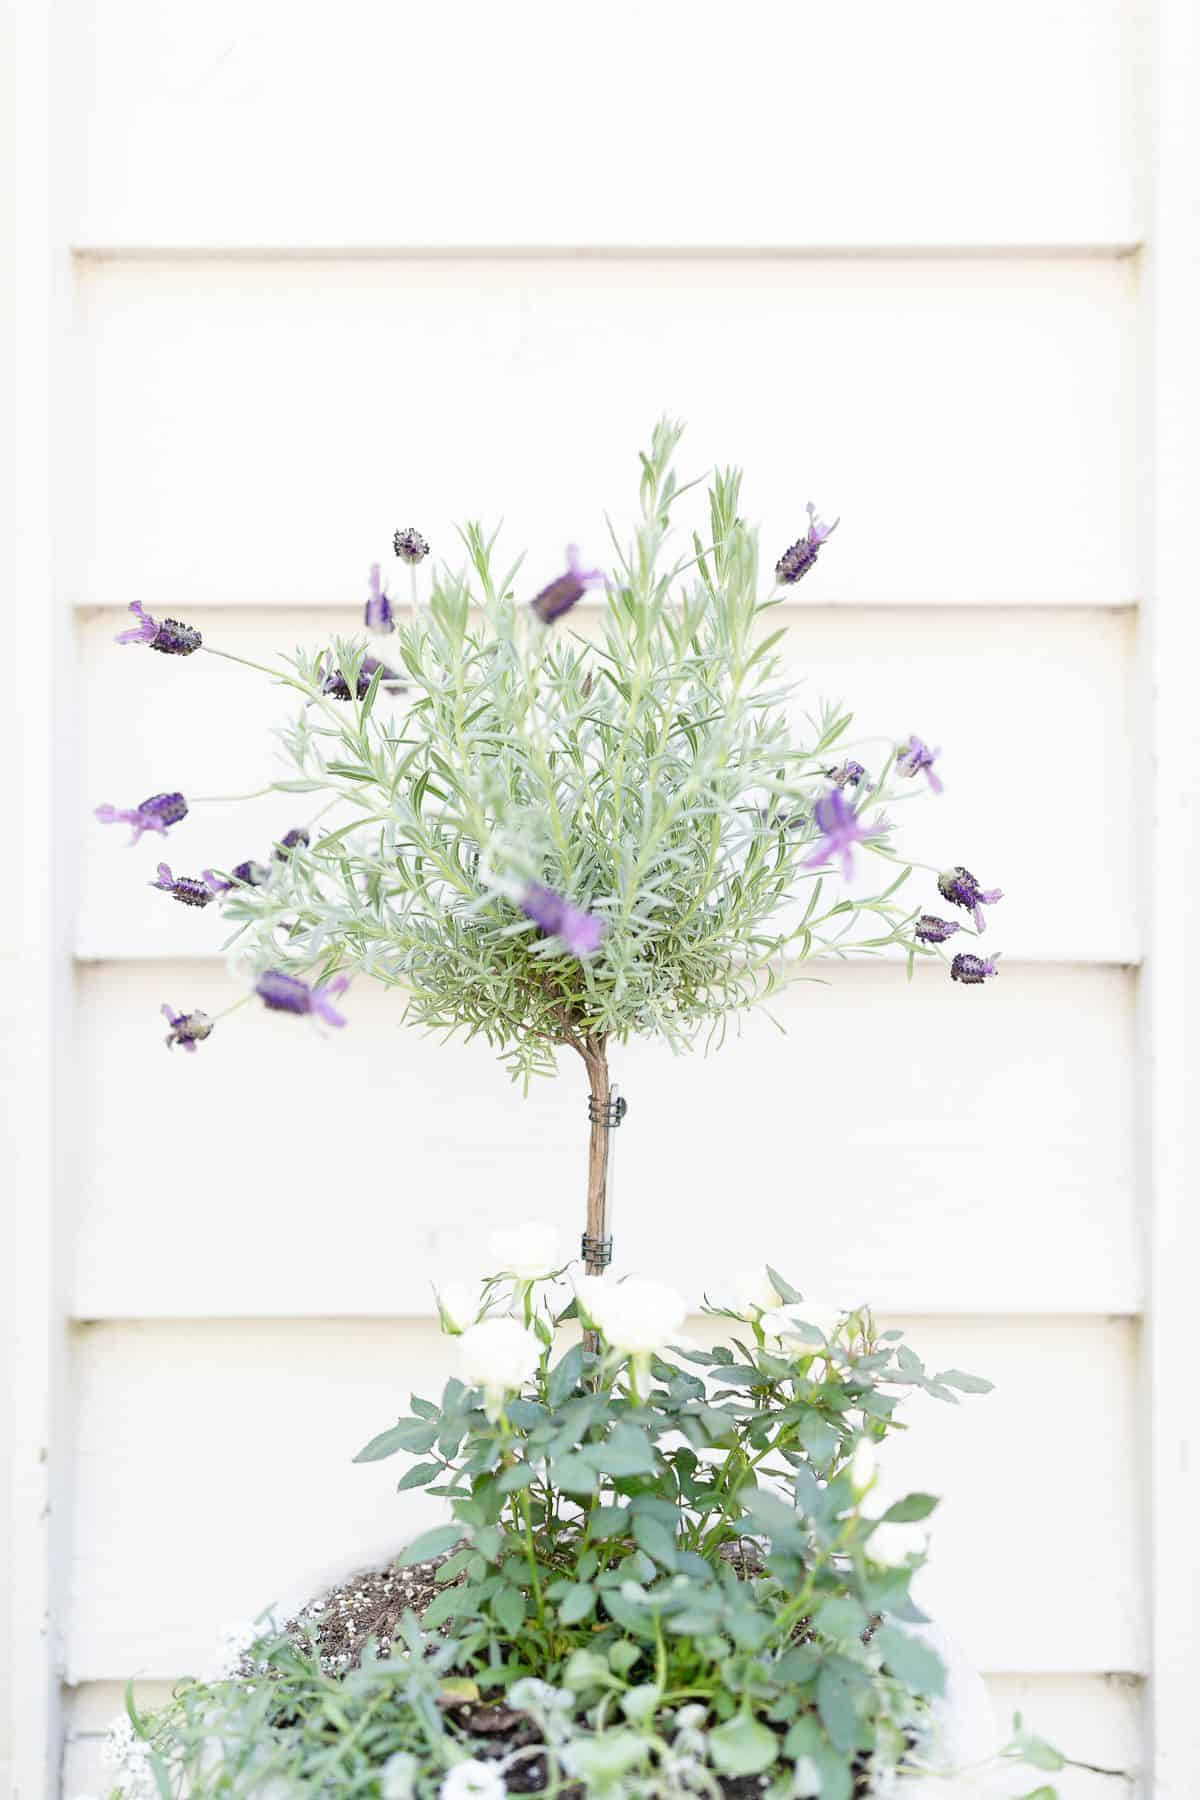 A blooming French lavender tree in a white pot, with white siding behind it.